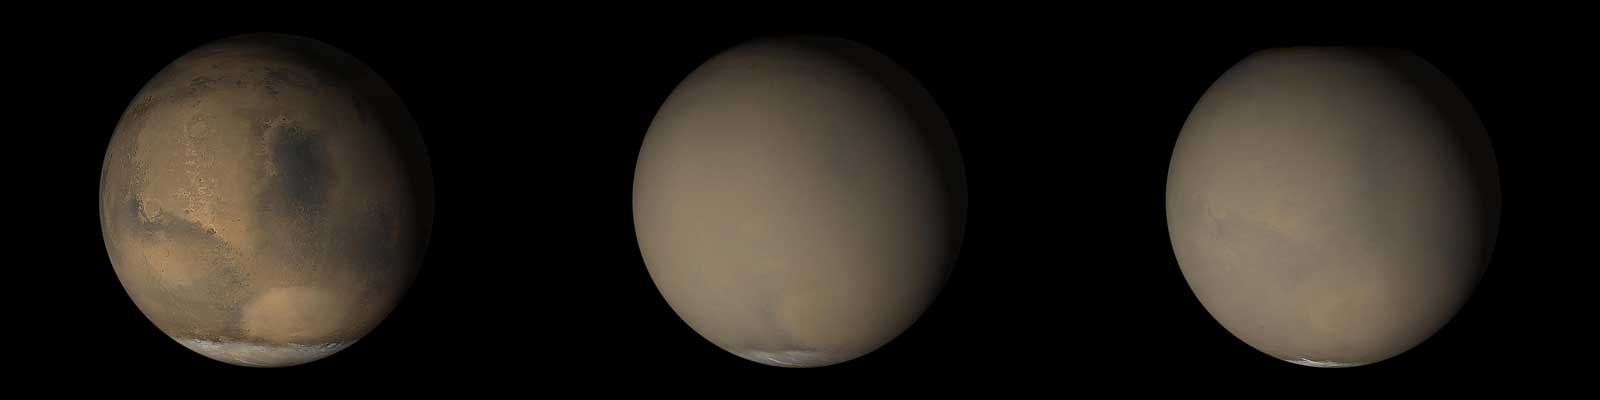 two global mars views, one clear one hazy